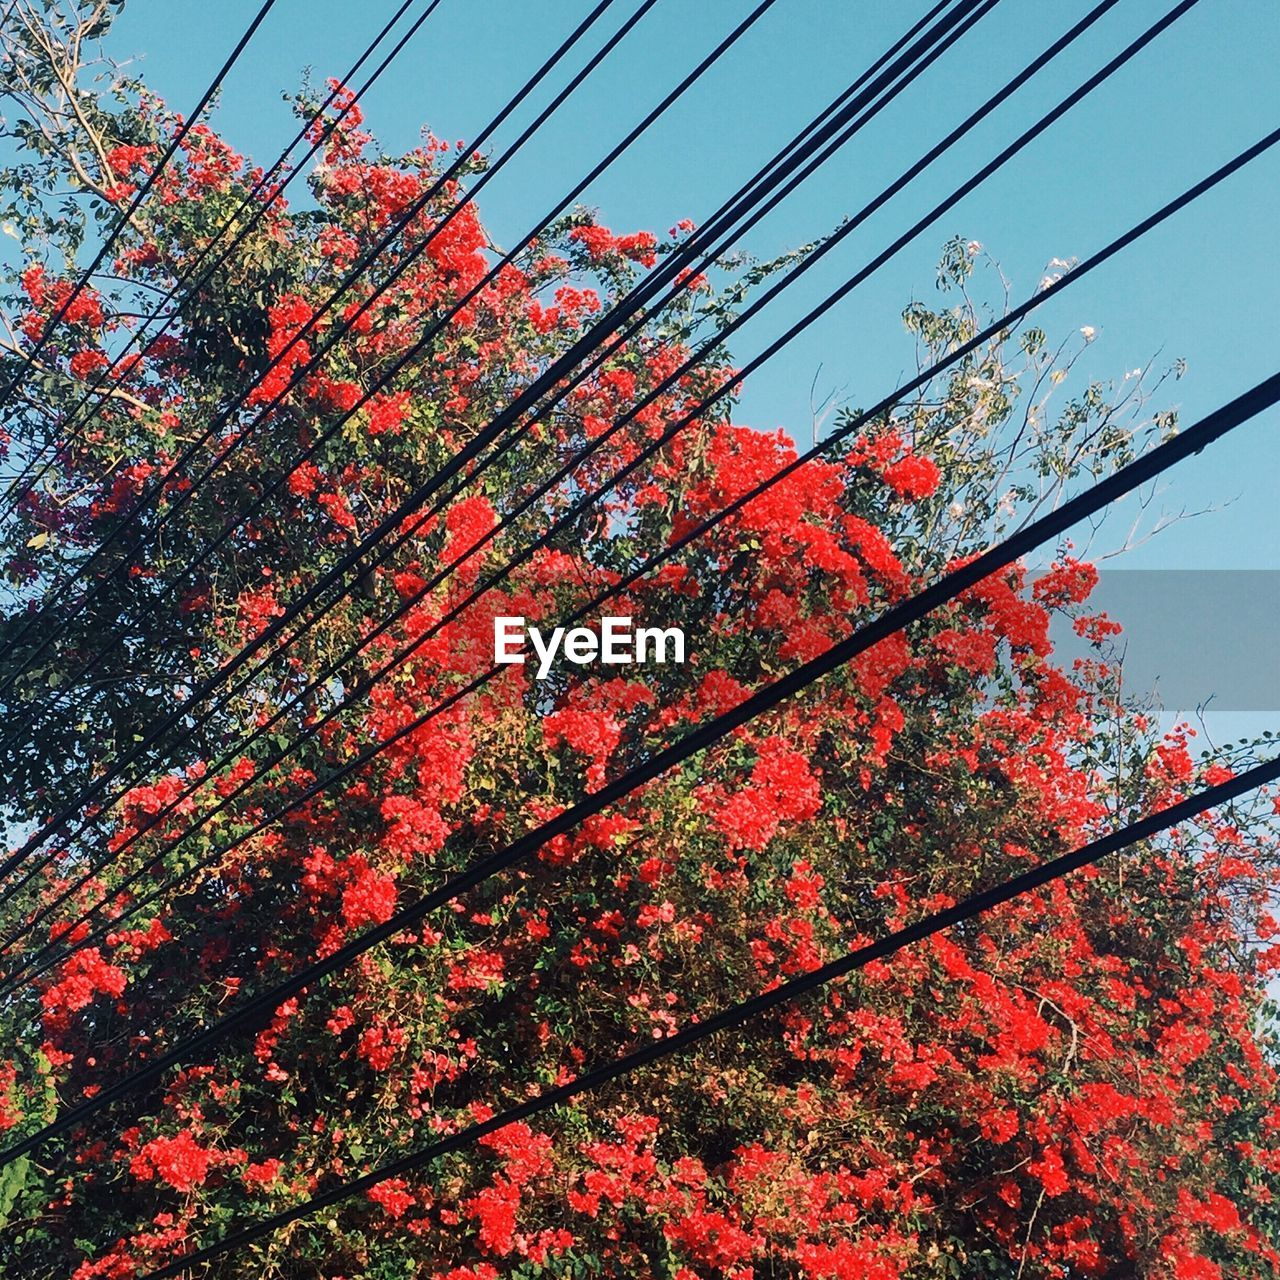 LOW ANGLE VIEW OF RED FLOWERS BLOOMING ON TREE